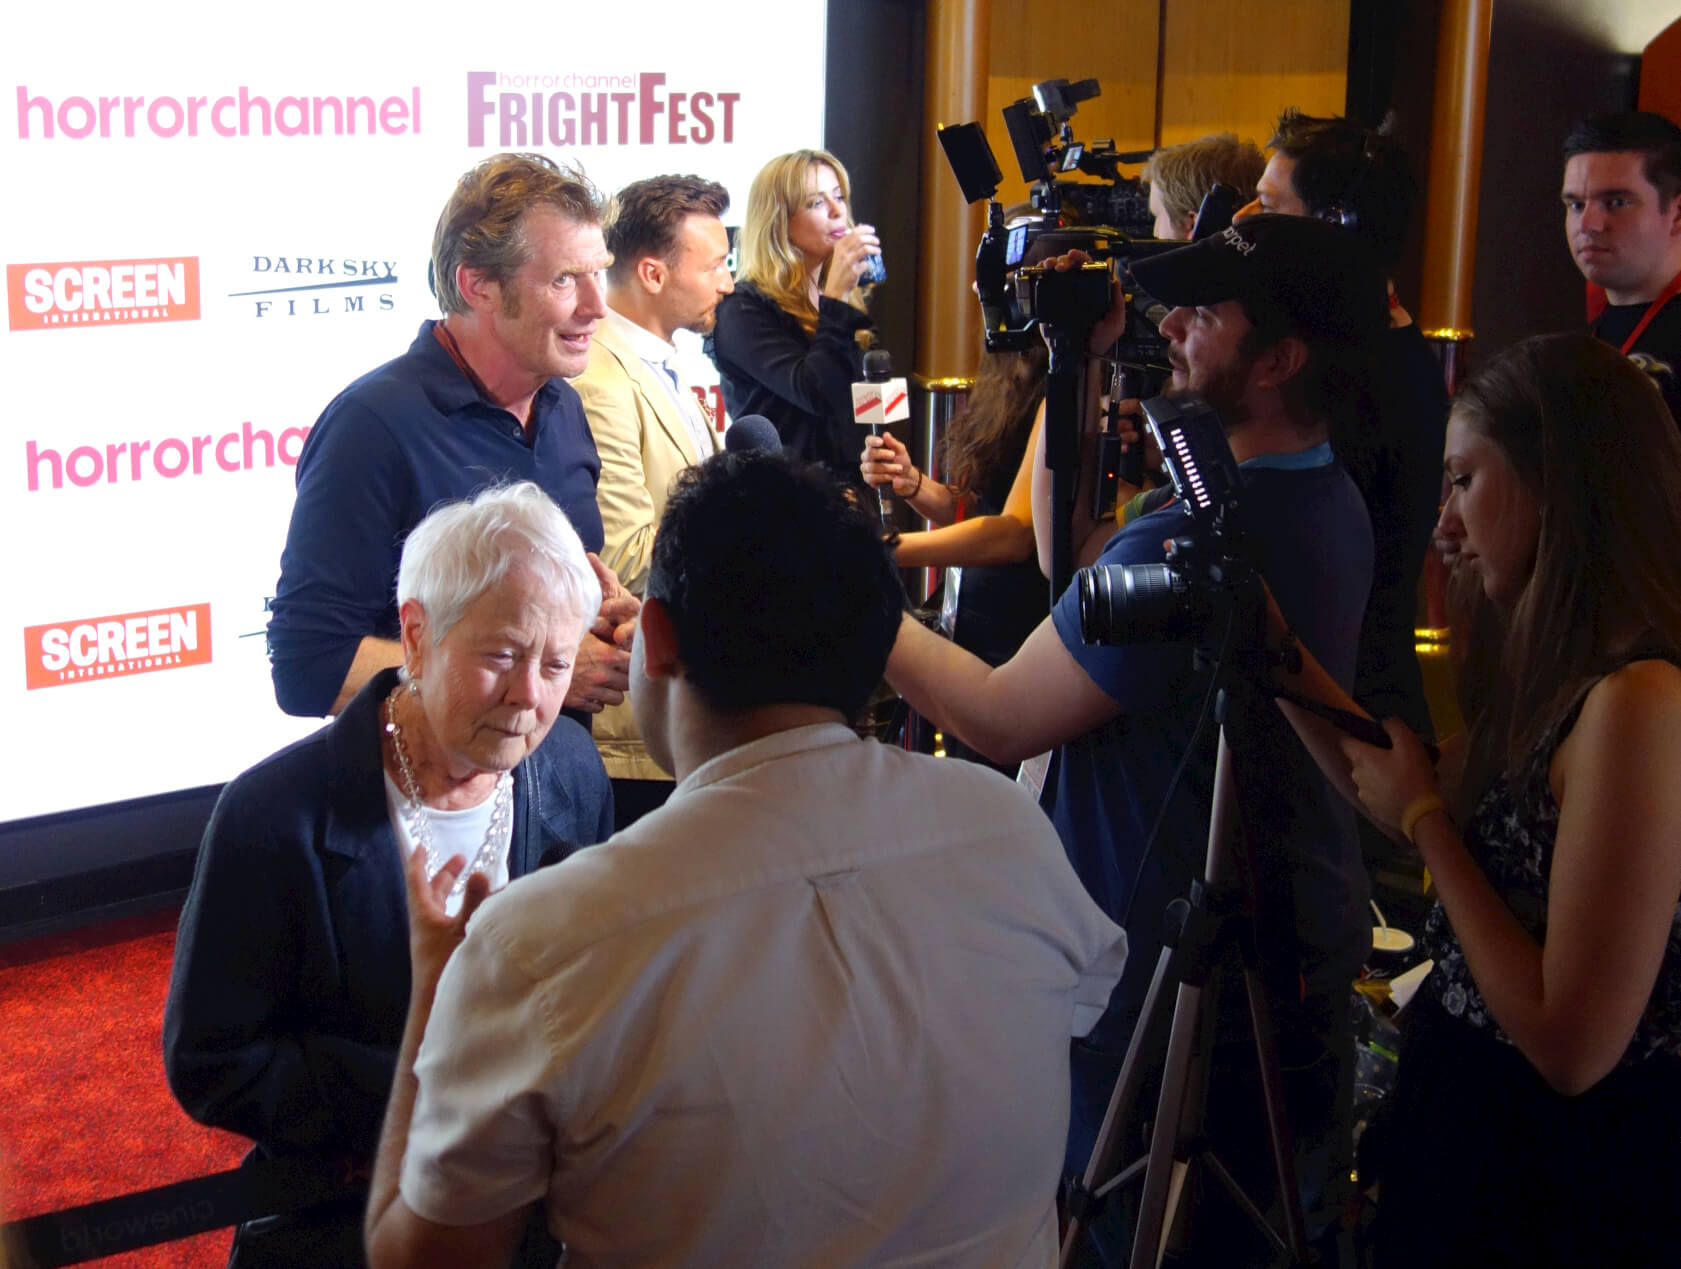 on camera - Frightfest press